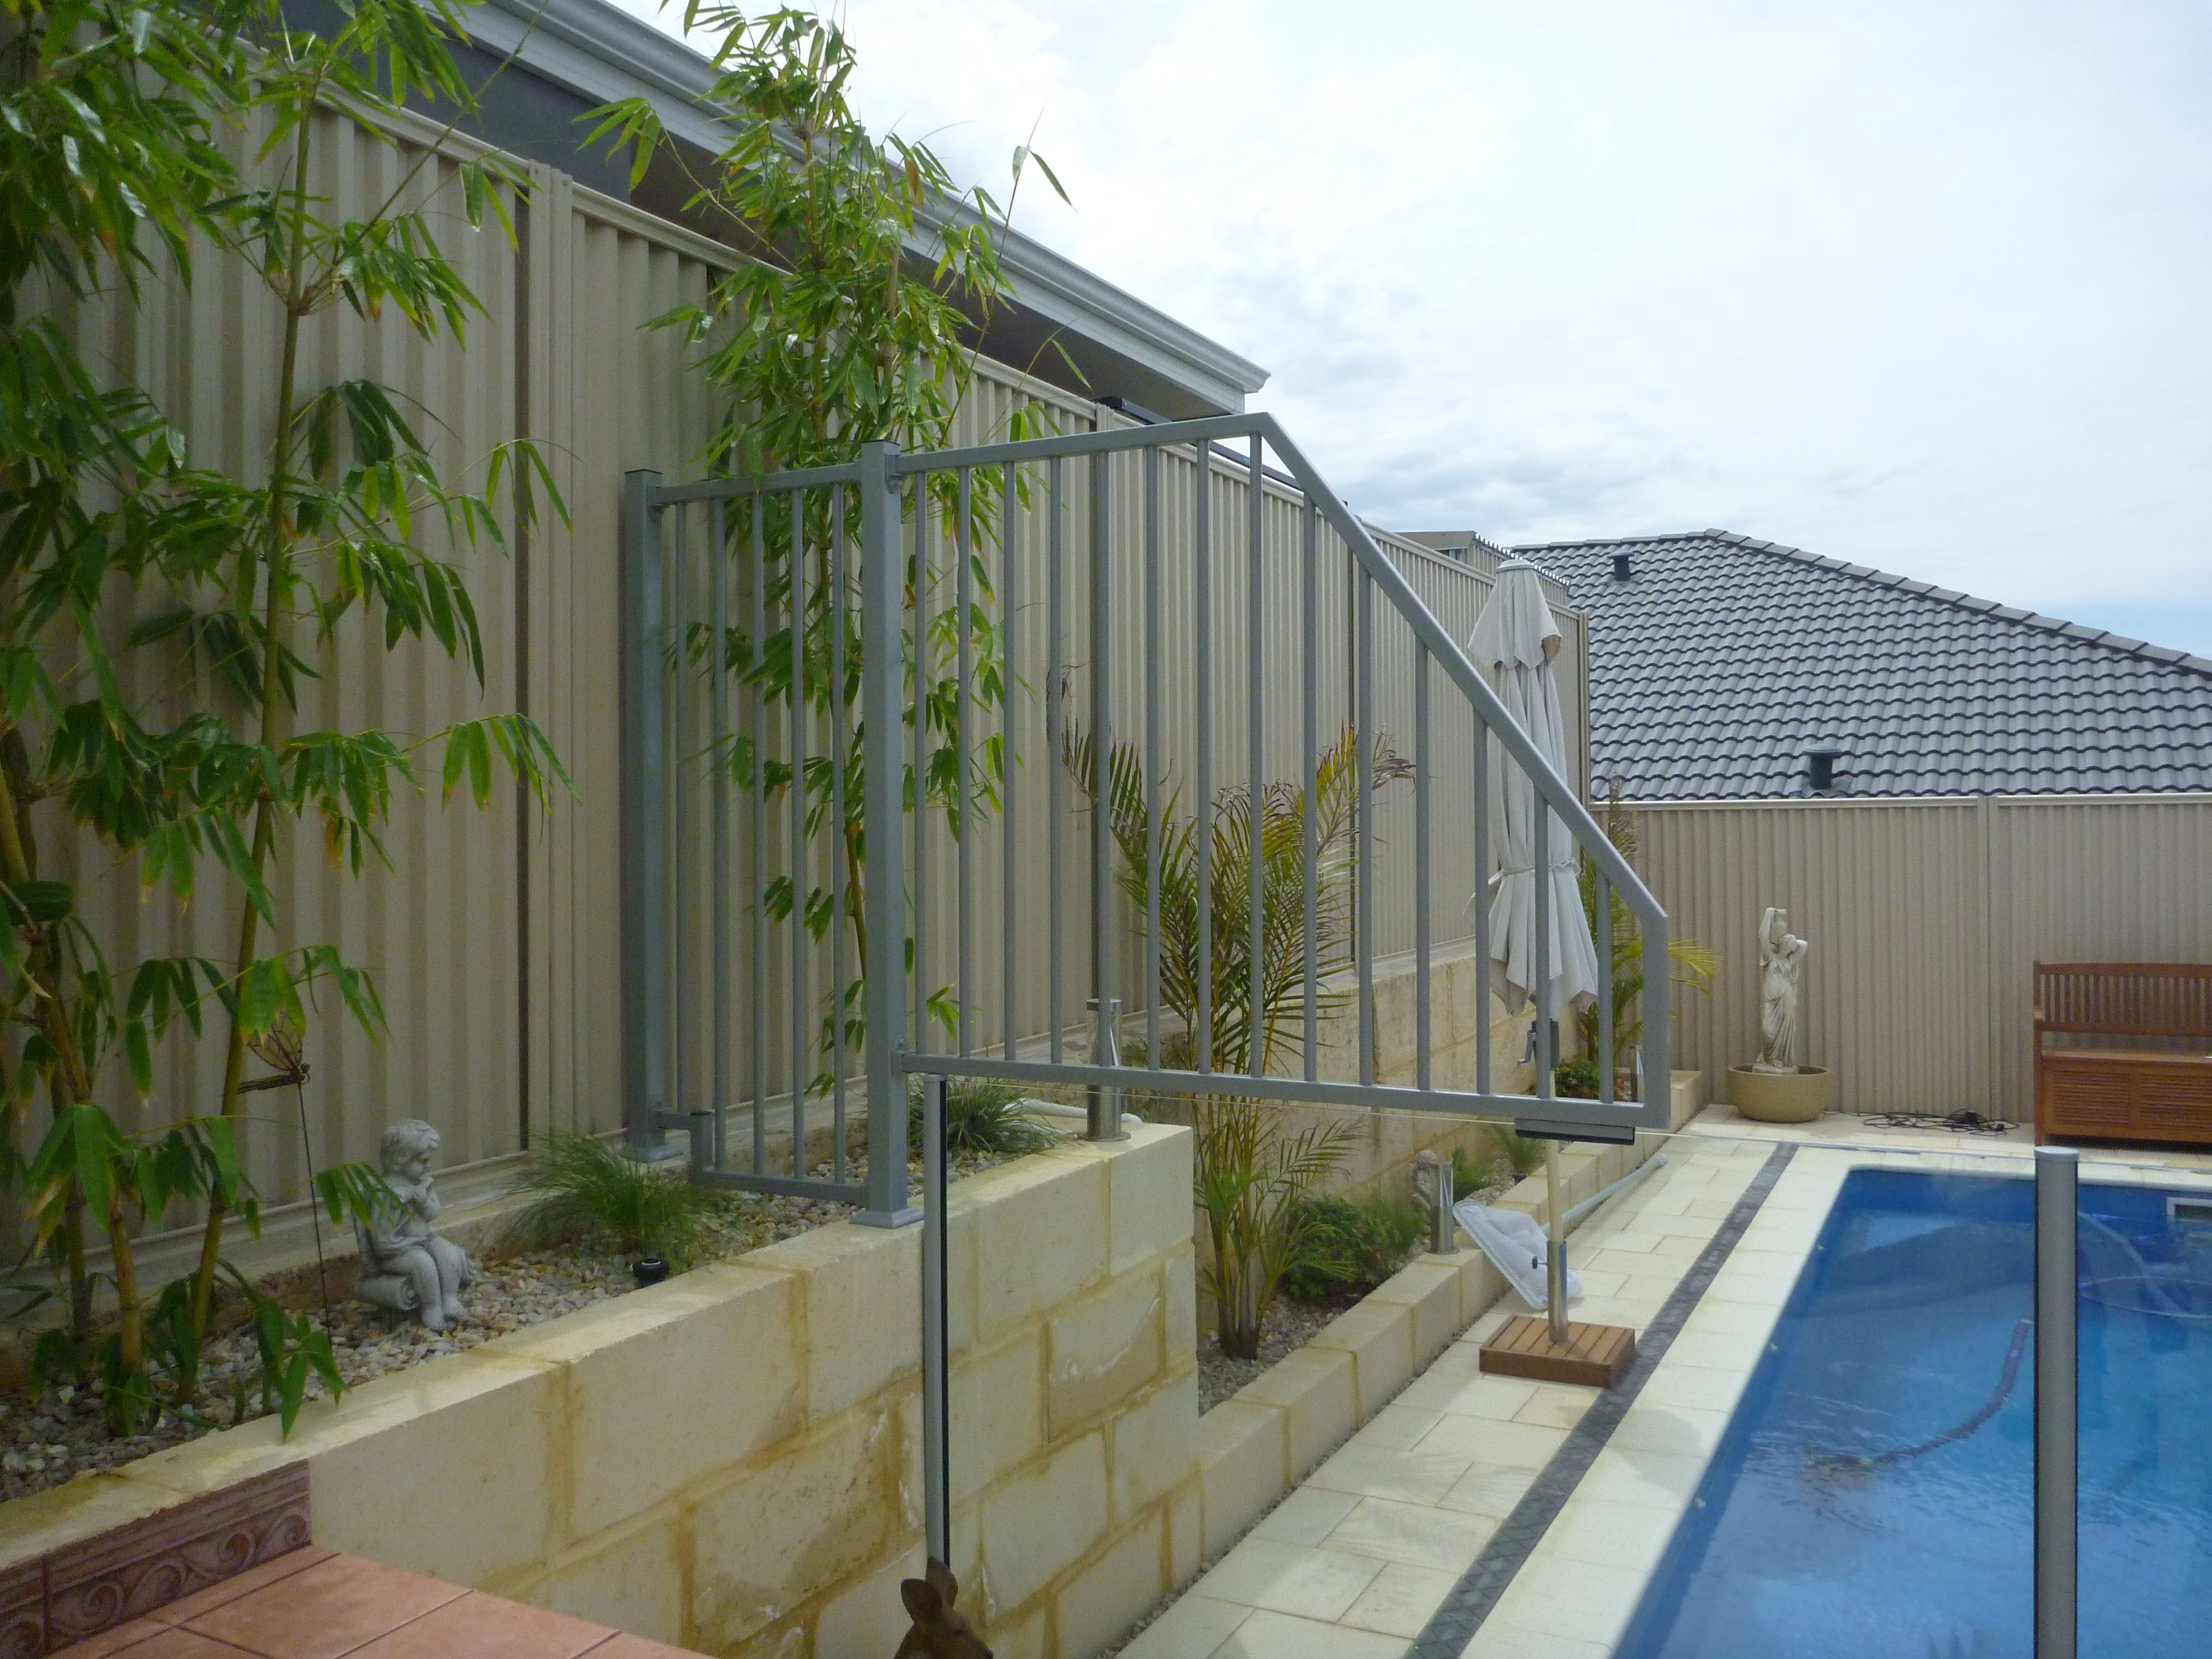 Glass Pool Fencing, Pool Fence, Retaining Walls, Pool Ideas, Swimming